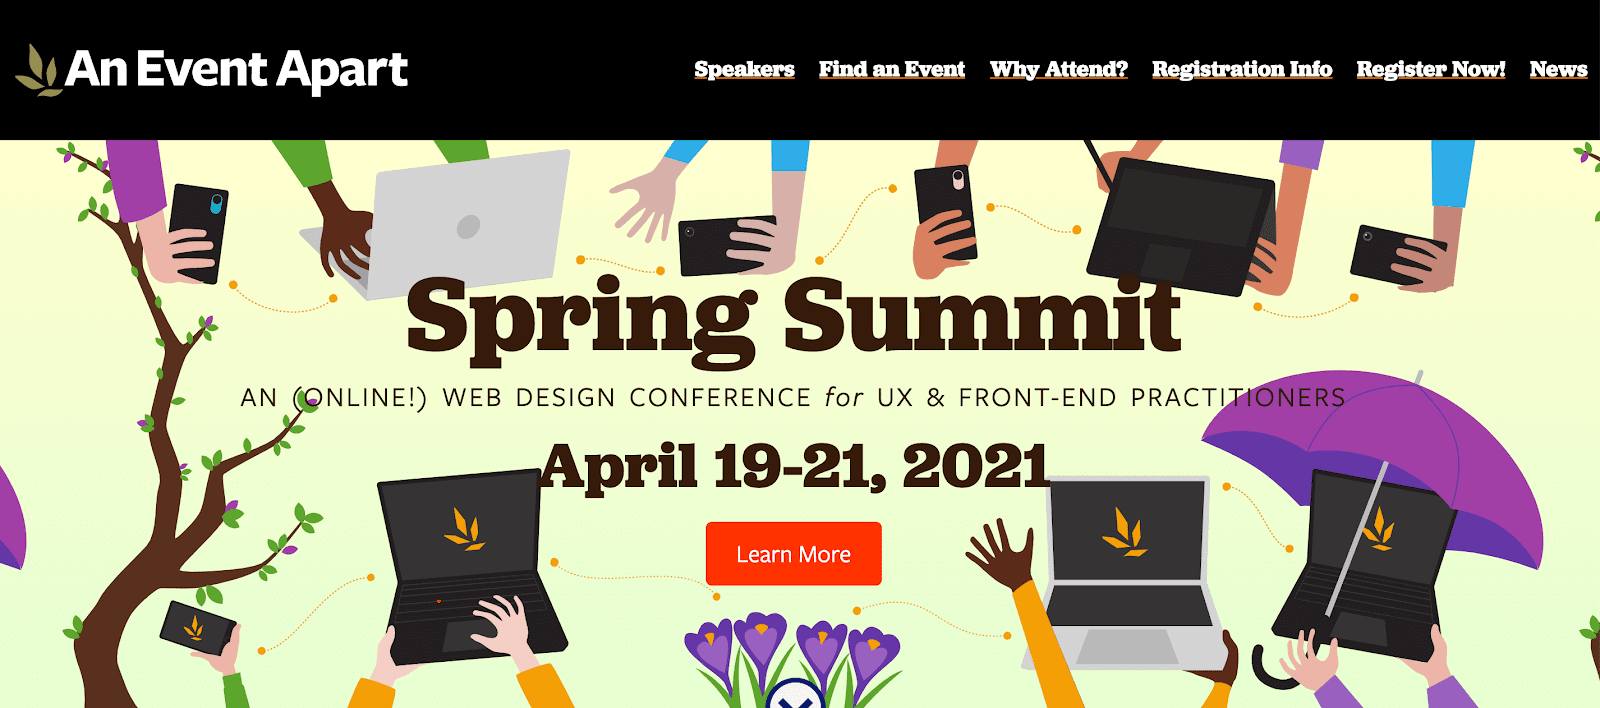 The event apart conference website homepage design